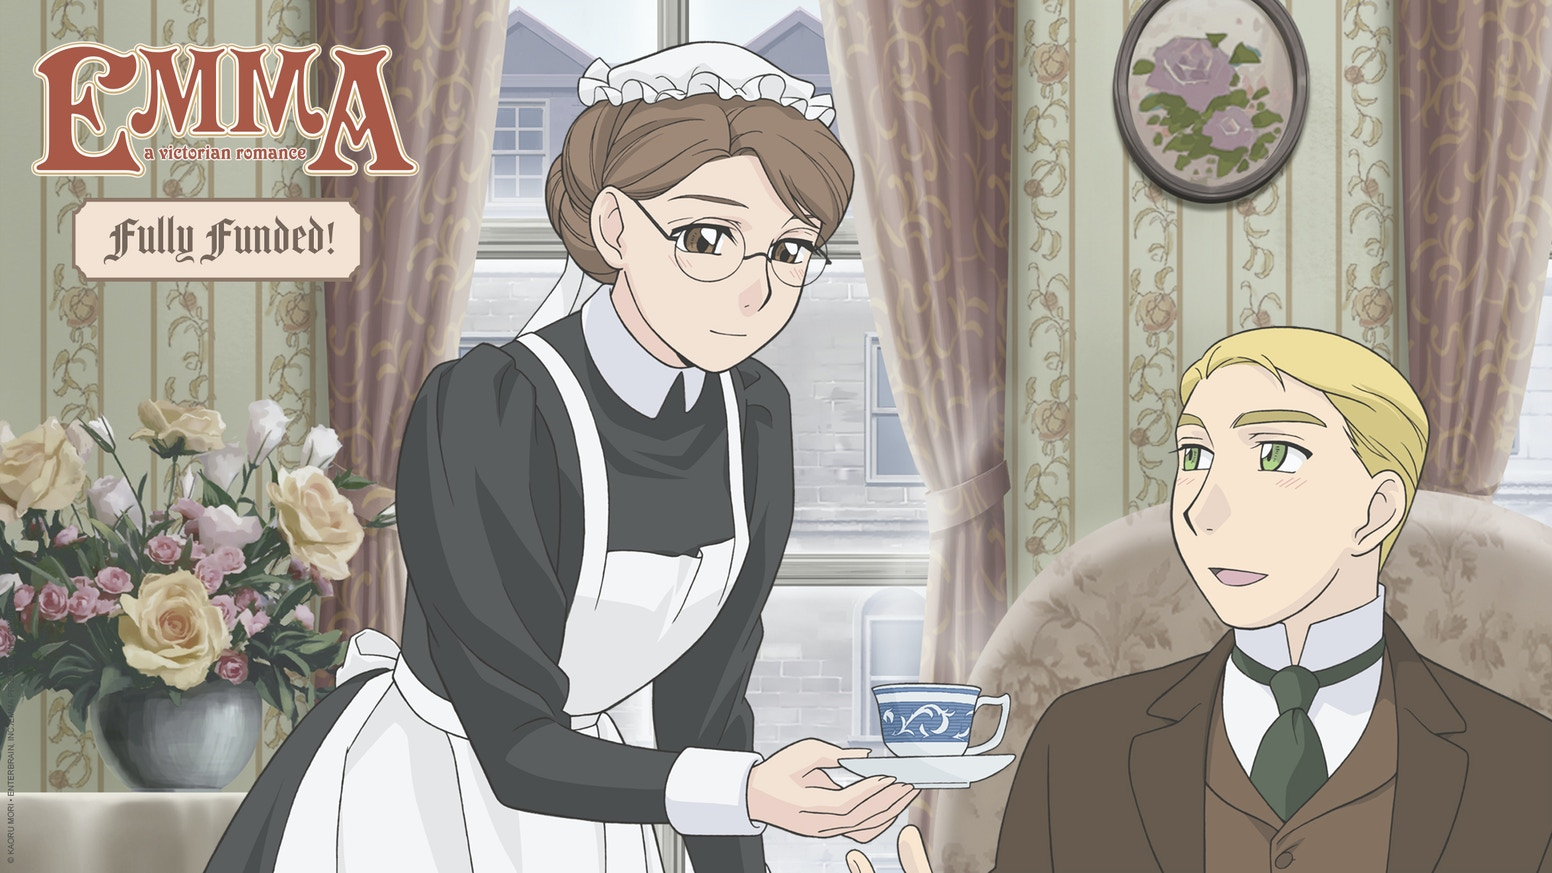 This project is to create an English Dubbed HD production of the Emma A Victorian Romance anime and release it on Blu-ray!